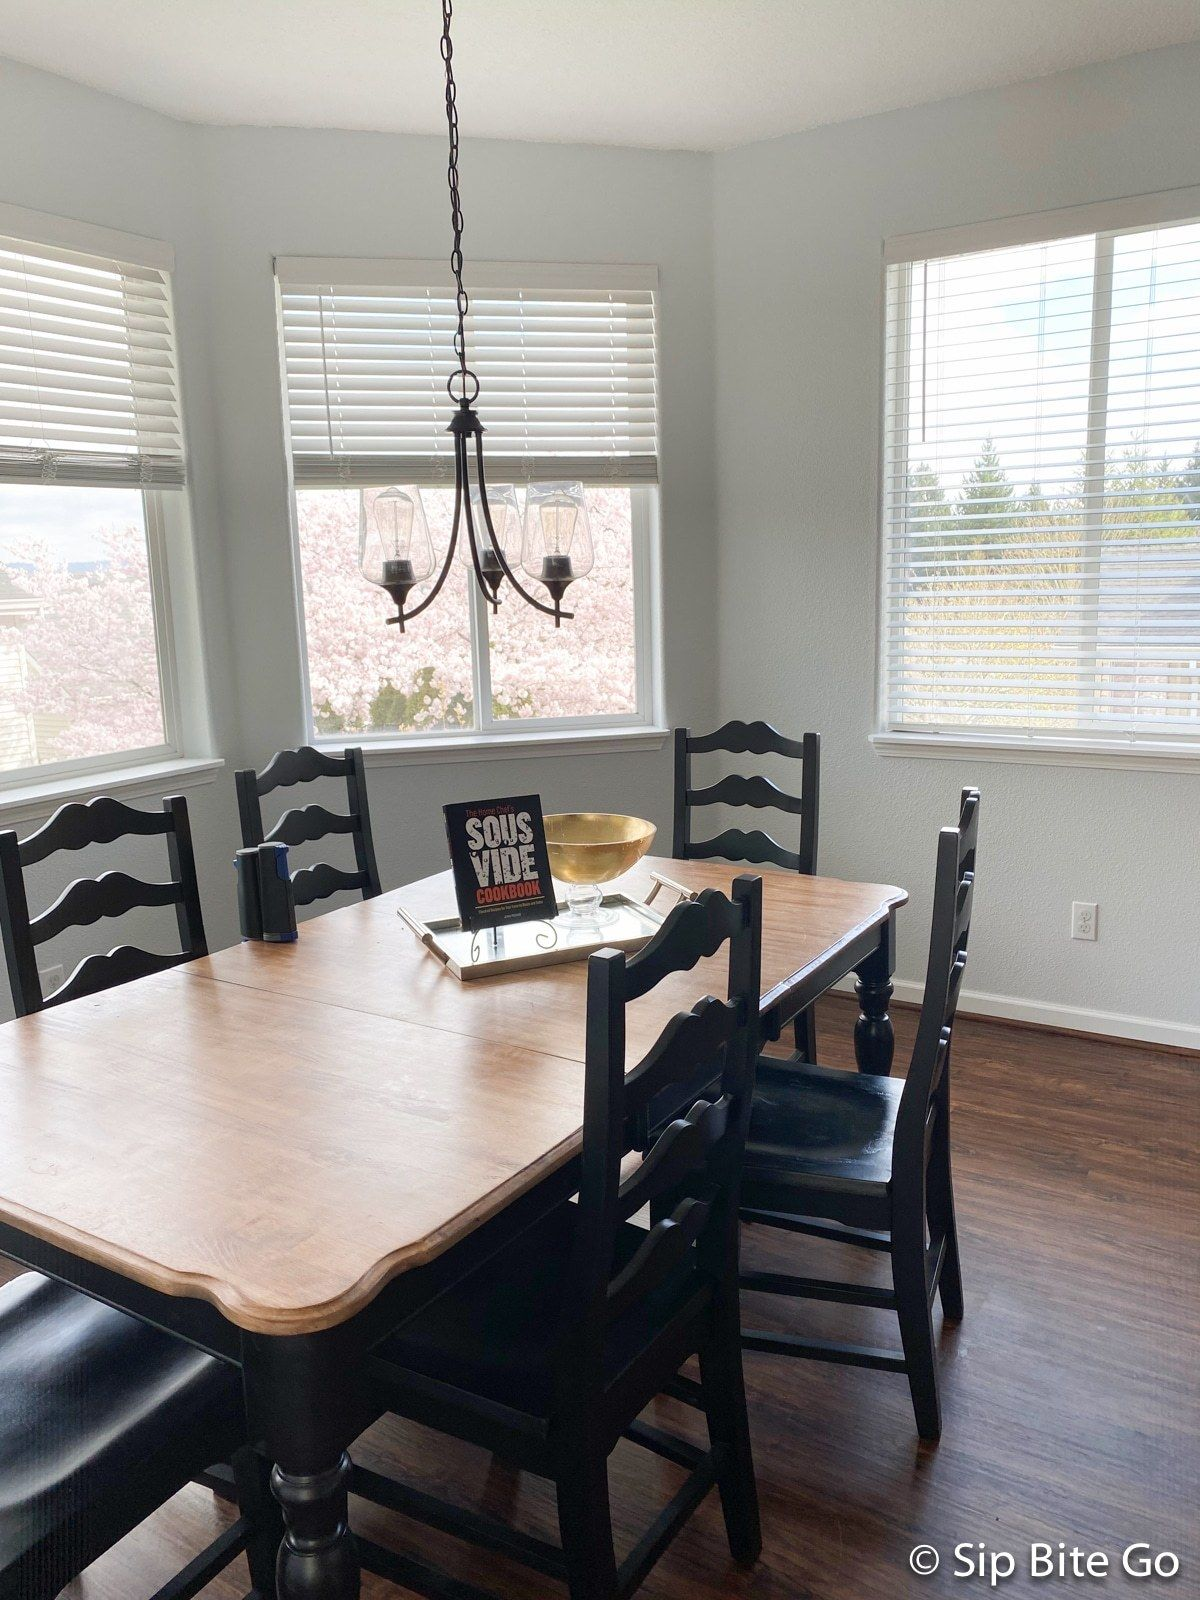 See our self installed DIY blinds made to order online. We